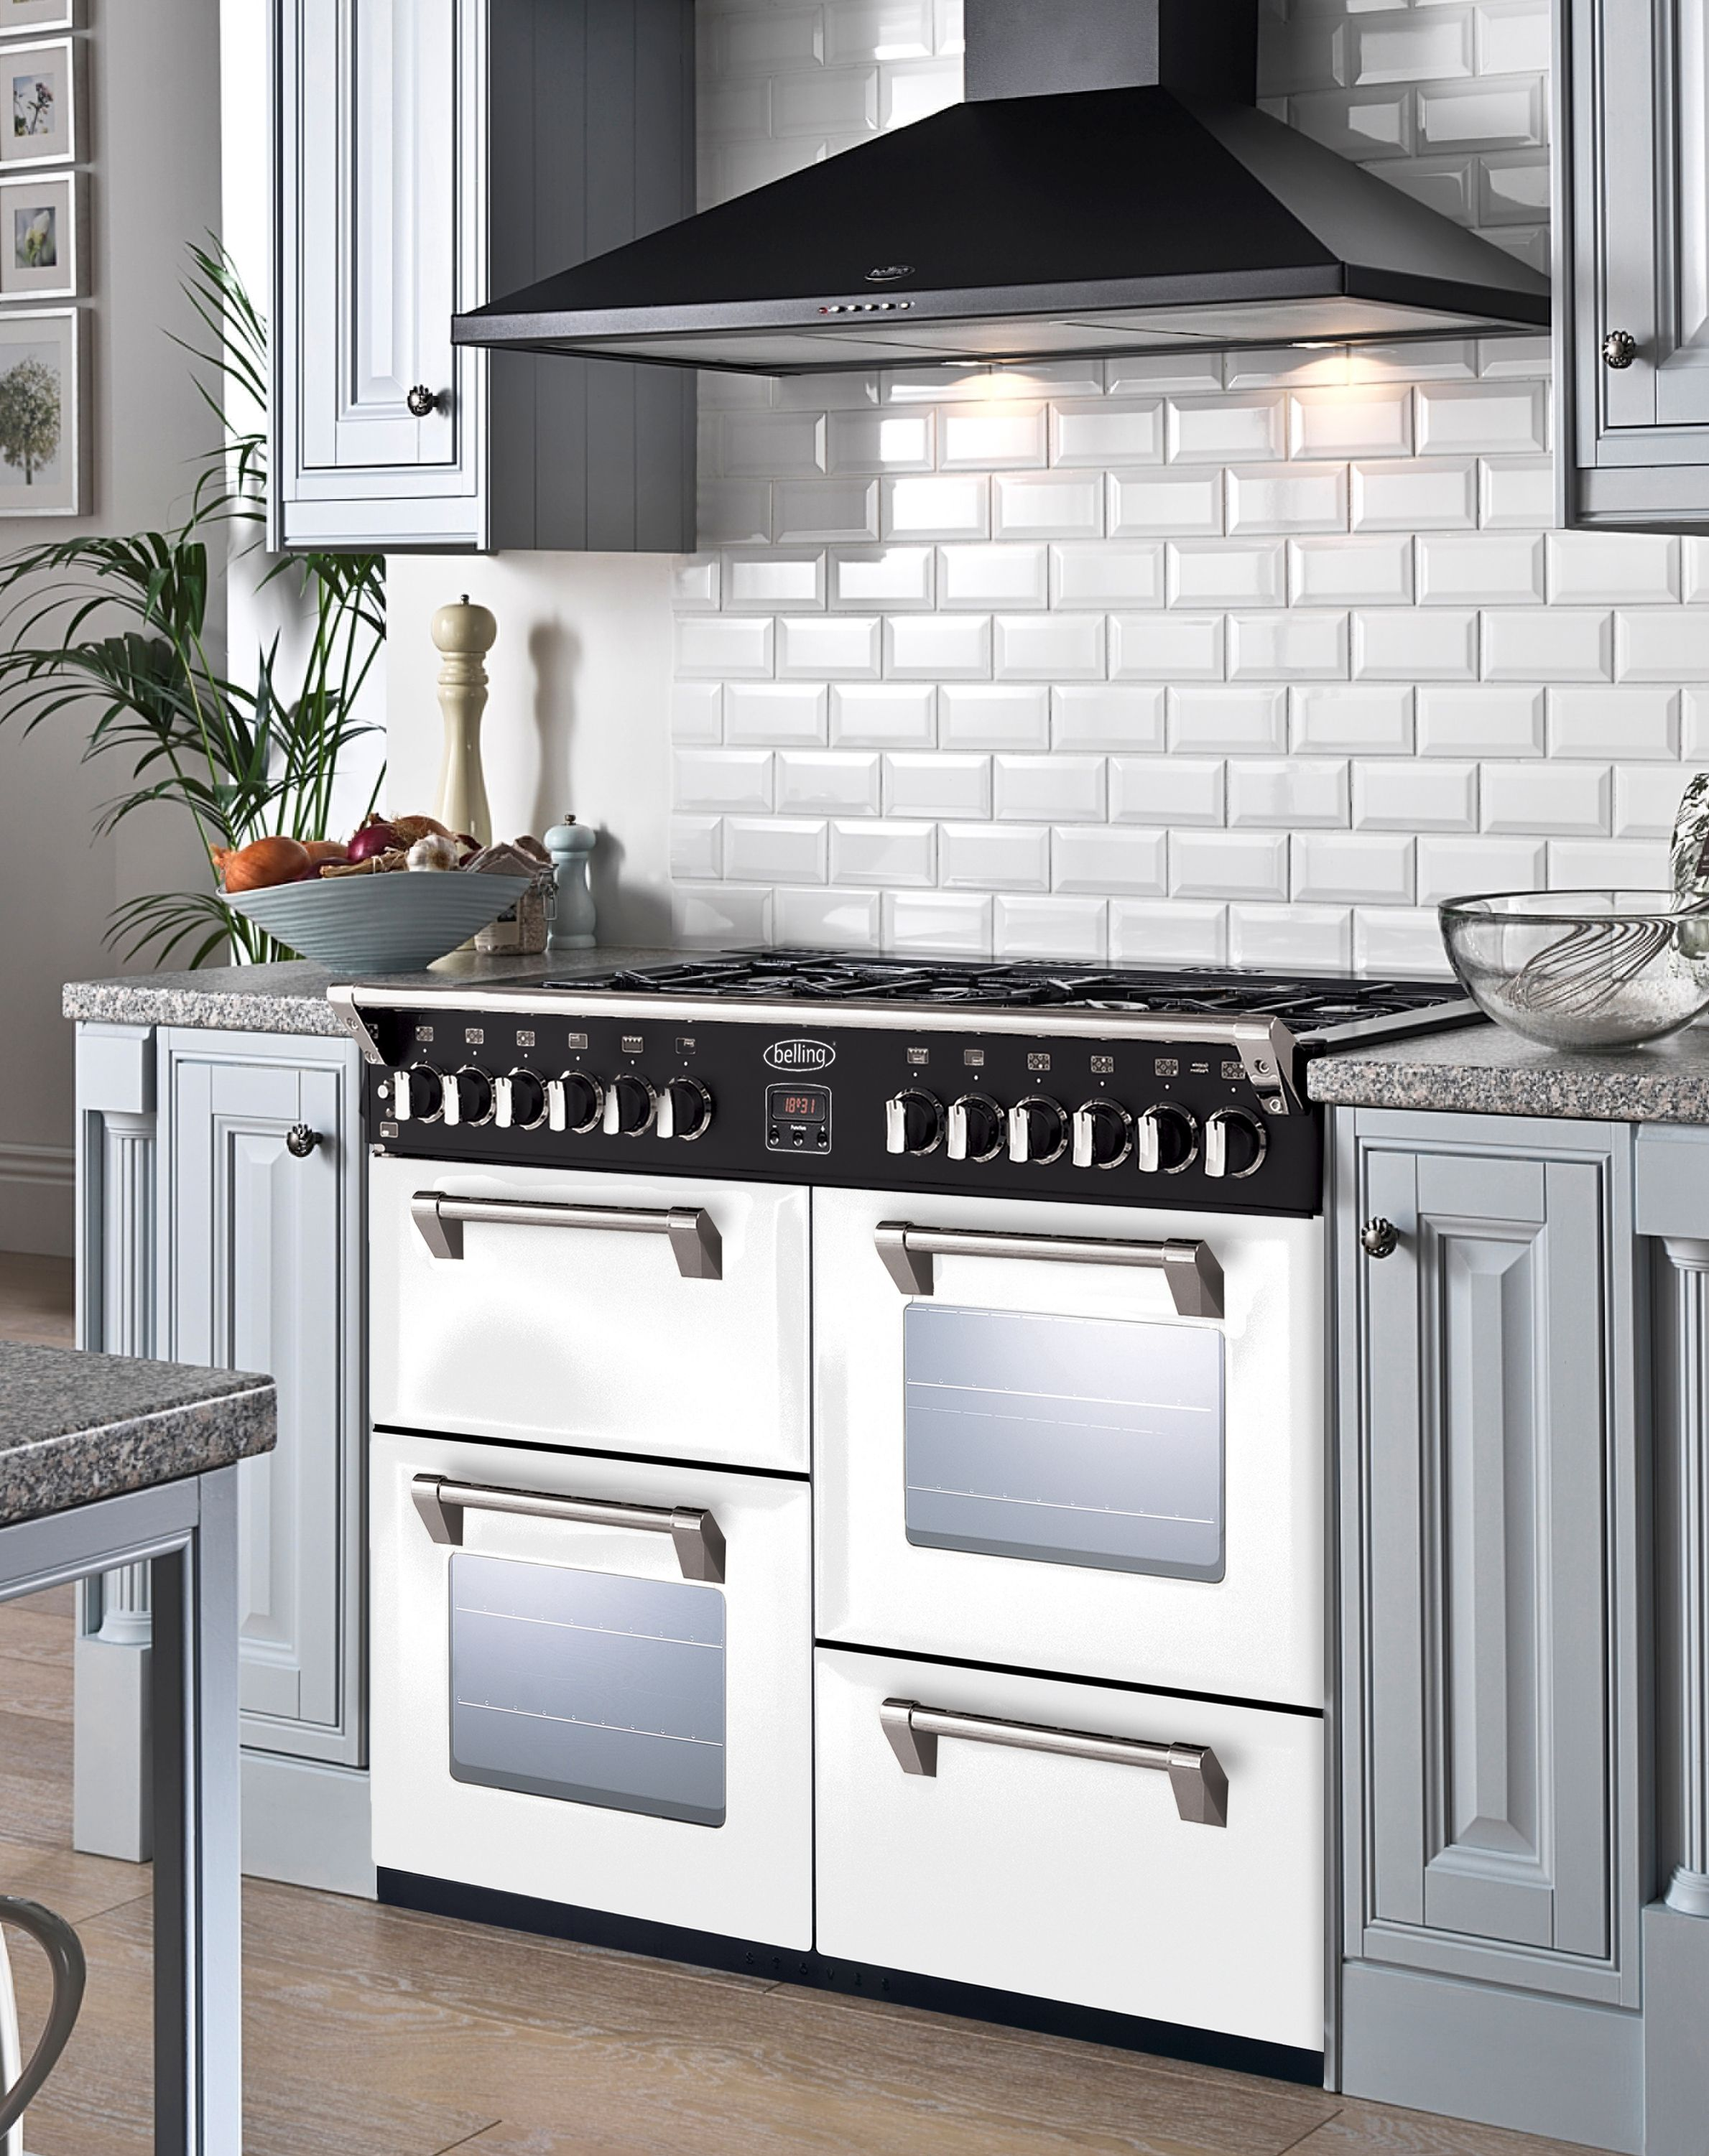 Kensington Kitchen Cabinets: What Kitchen Design Will You Come Up With The White